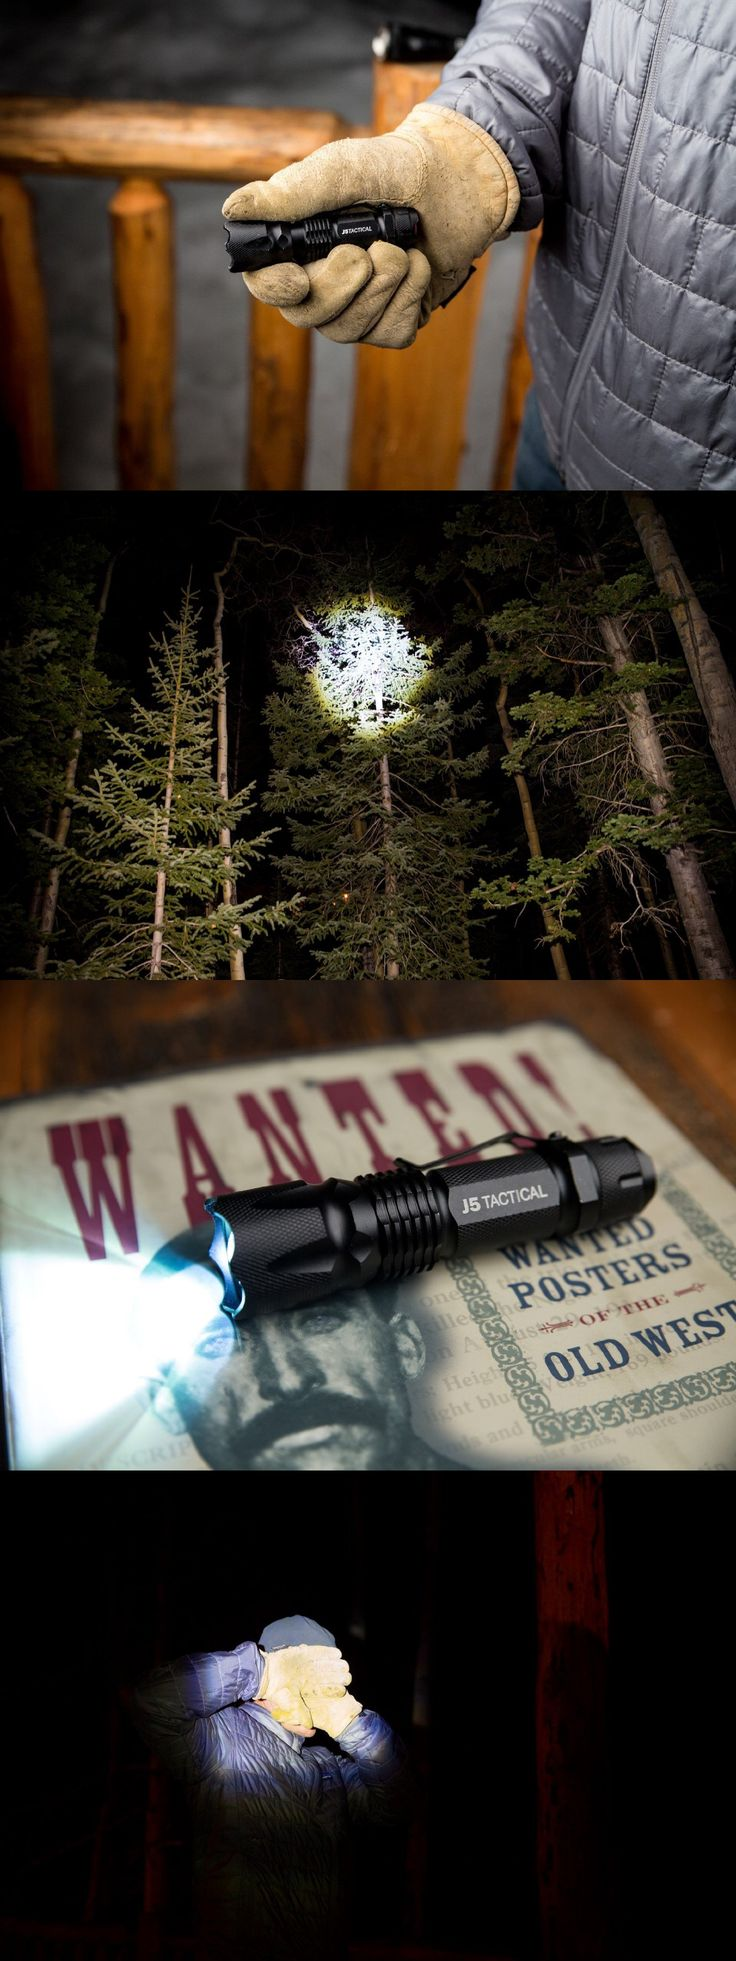 Awesome strobe mode on this flashlight that will confuse and disorient attackers. Great everyday safety flashlight and perfect for camping.